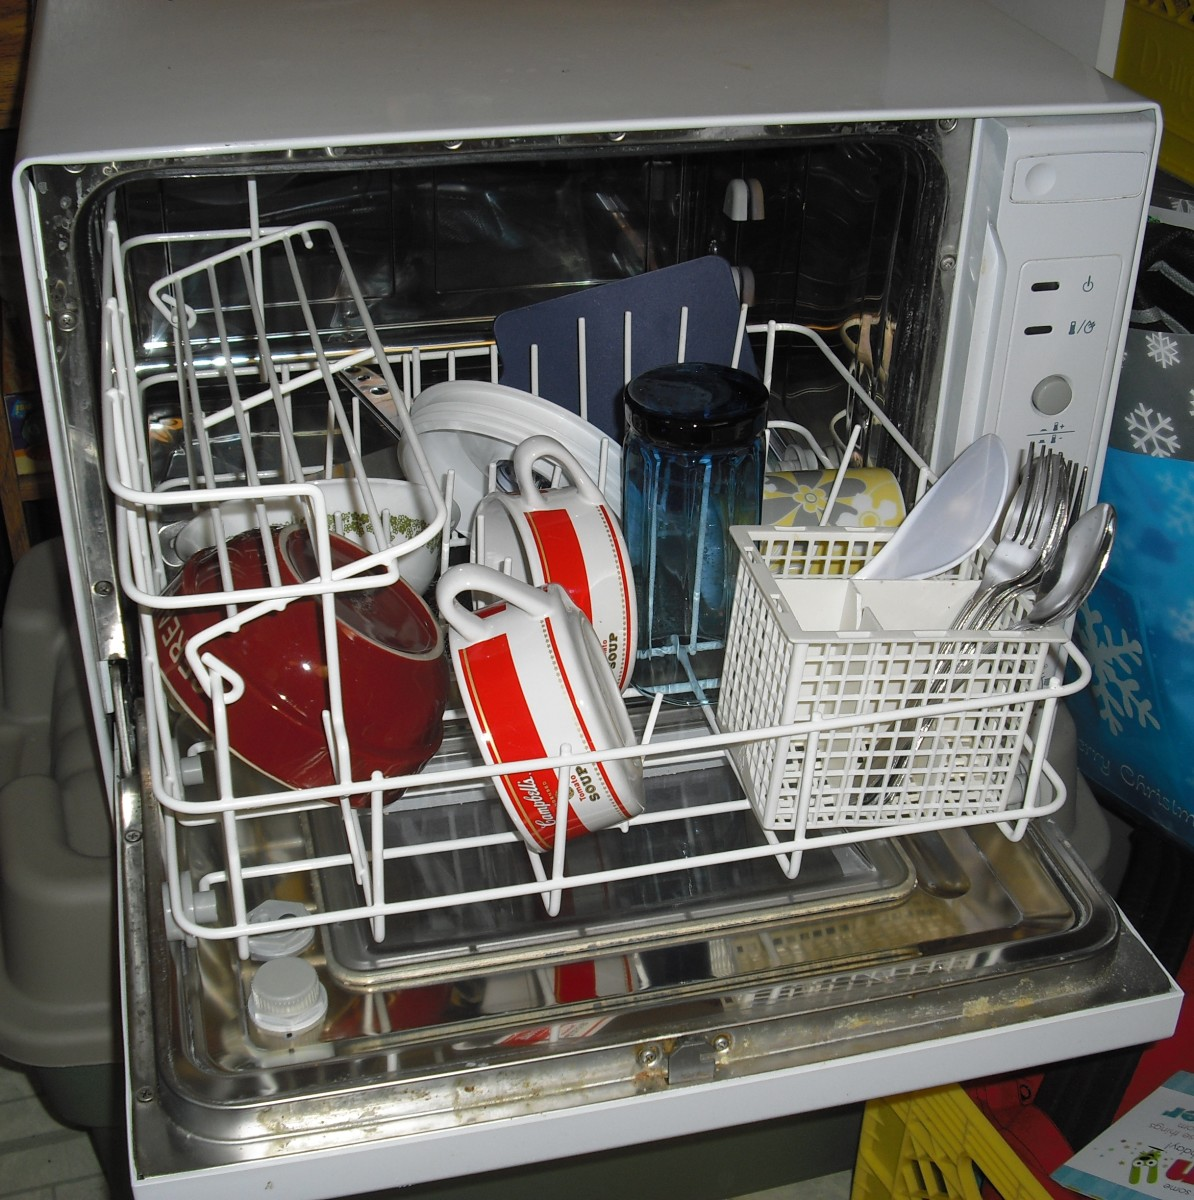 Stuffed animals, plastic action figures and other toys, baseball caps, tennis shoes and hairbrushes come out squeaky clean after a trip in the multi practical Dishwasher.